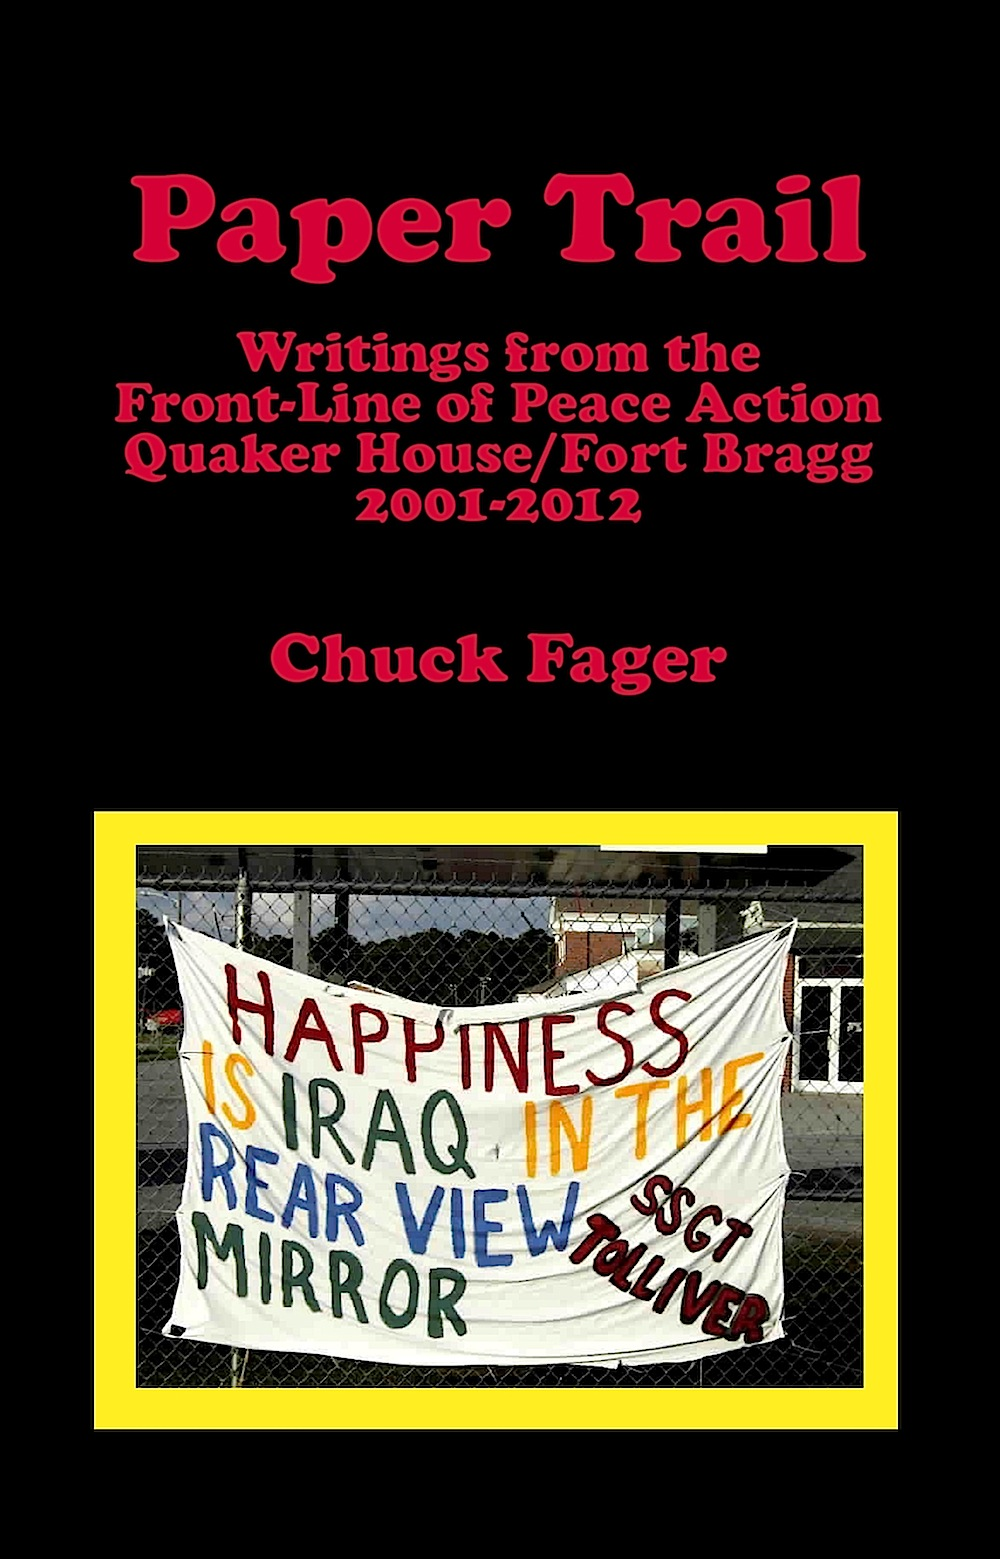 Paper Trail, by Chuck Fager, cover